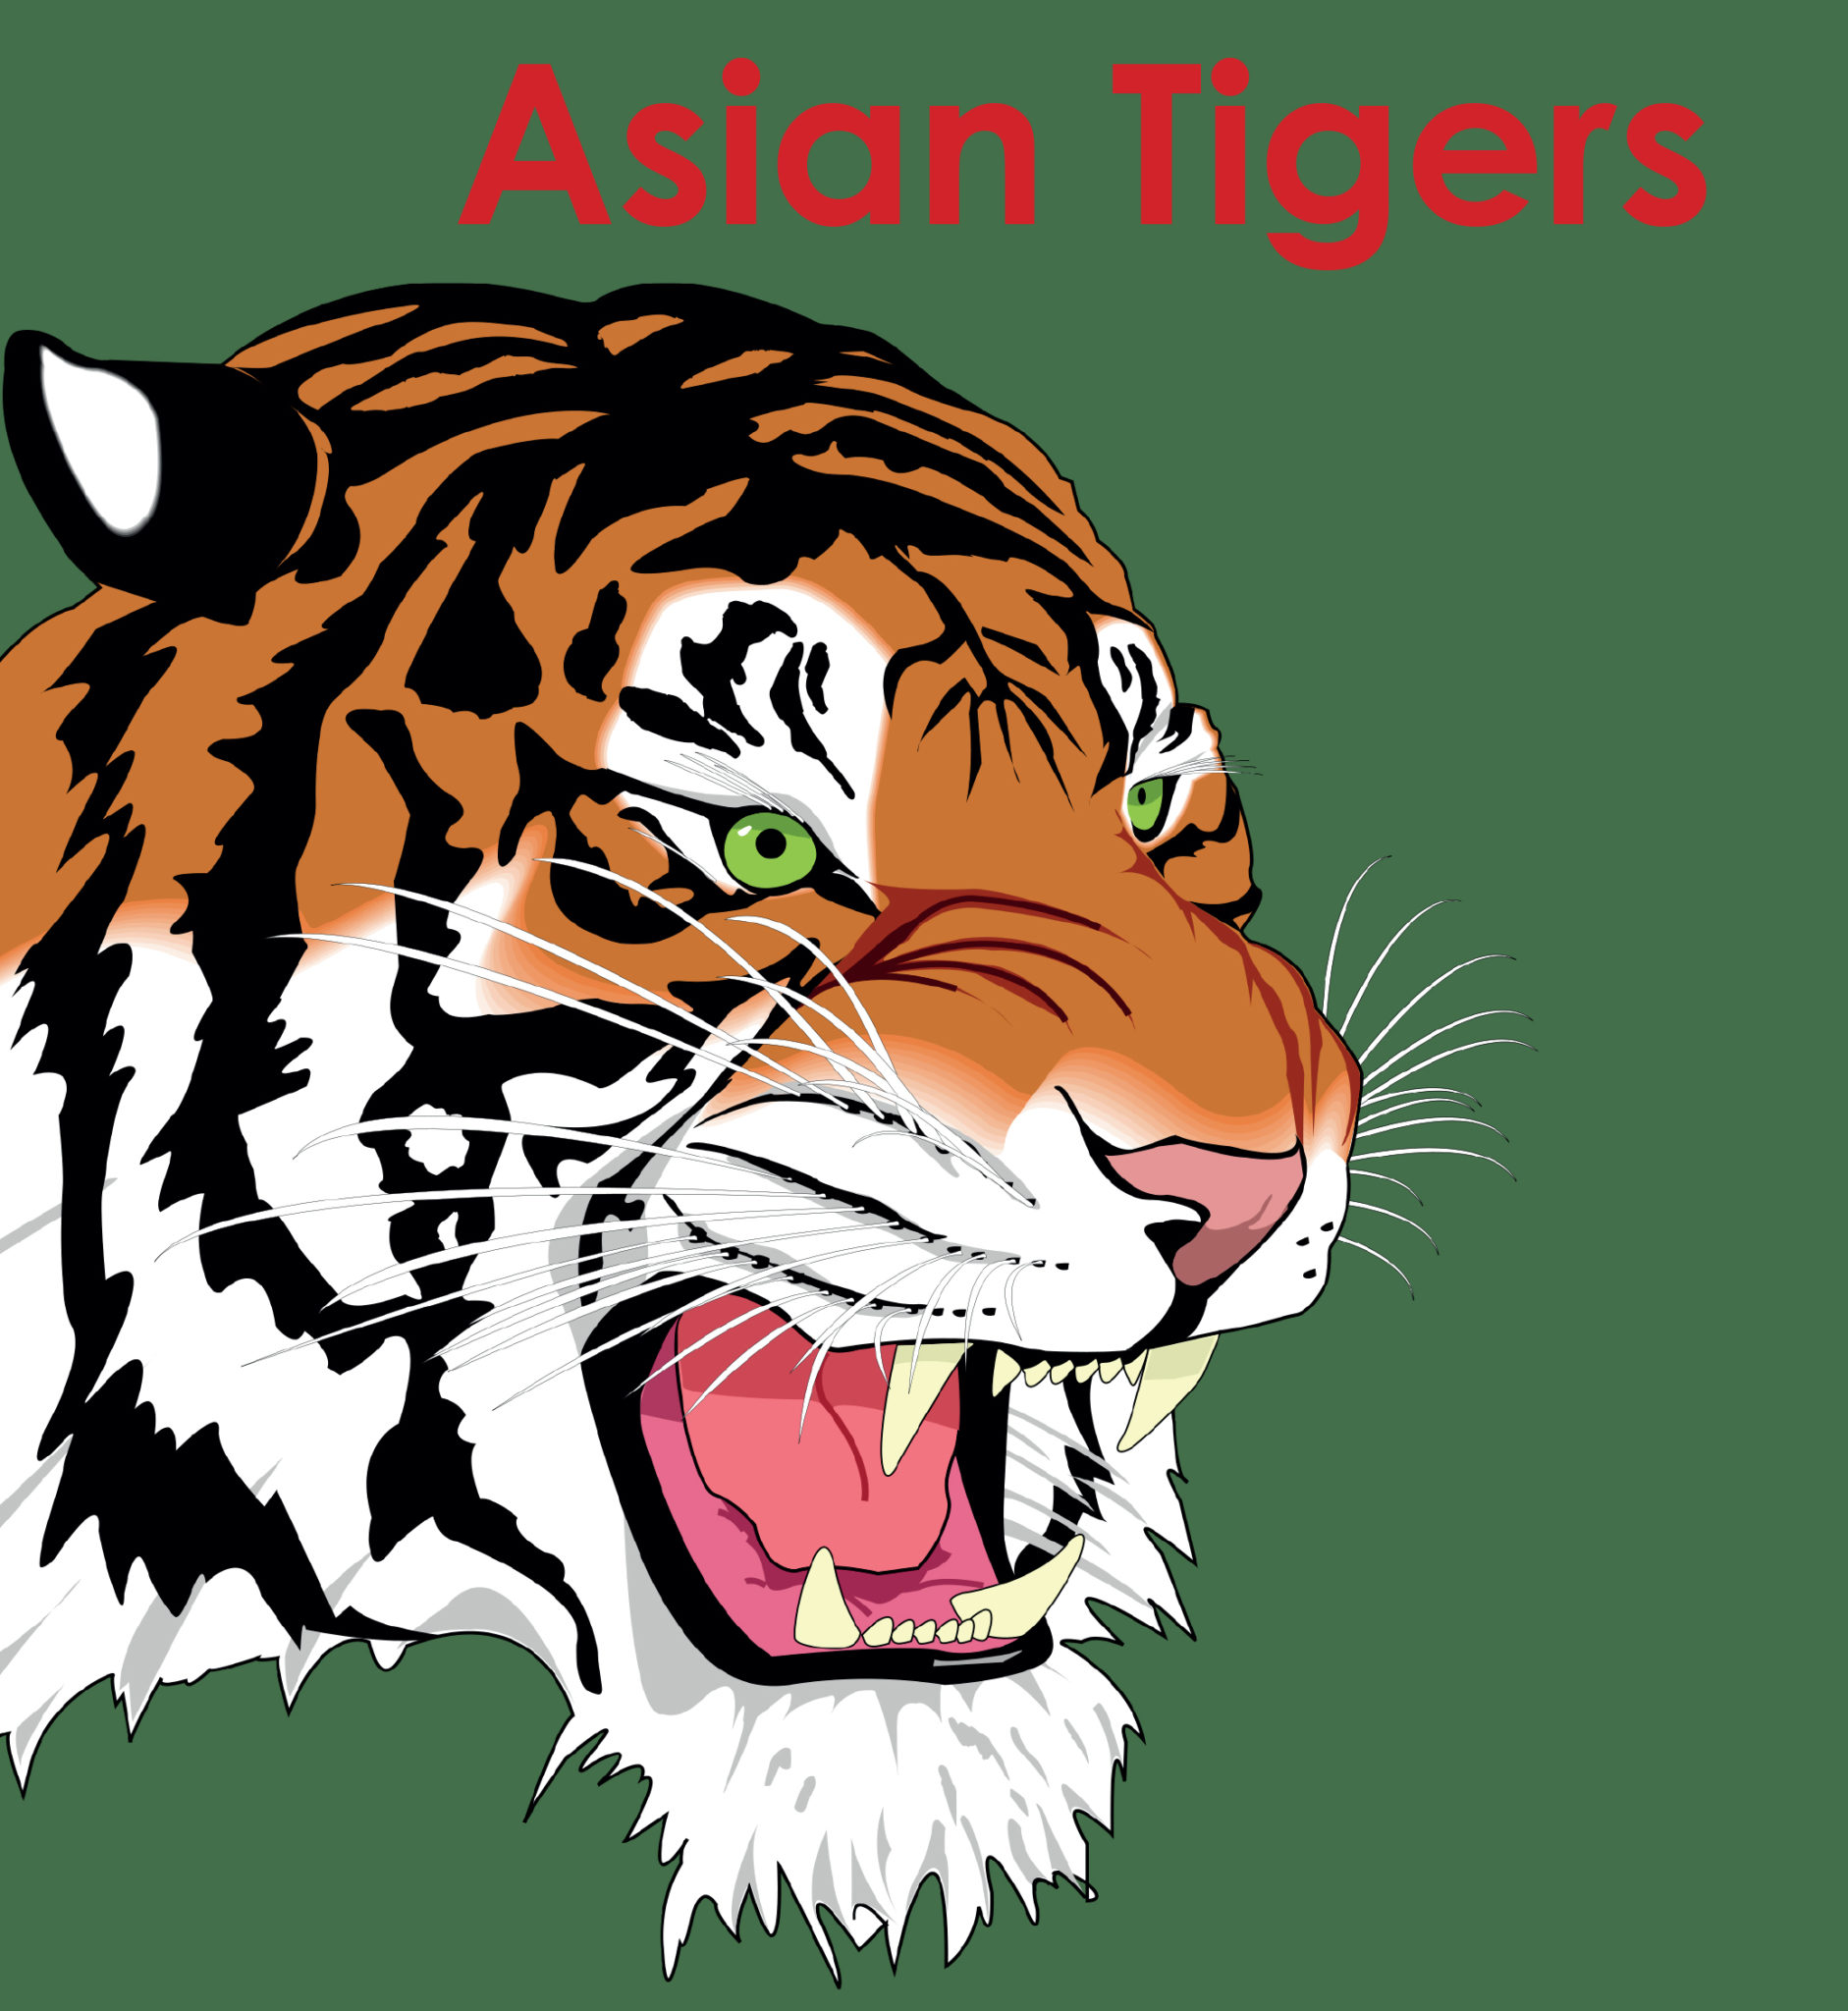 South Africa lagging behind the Asian Tigers